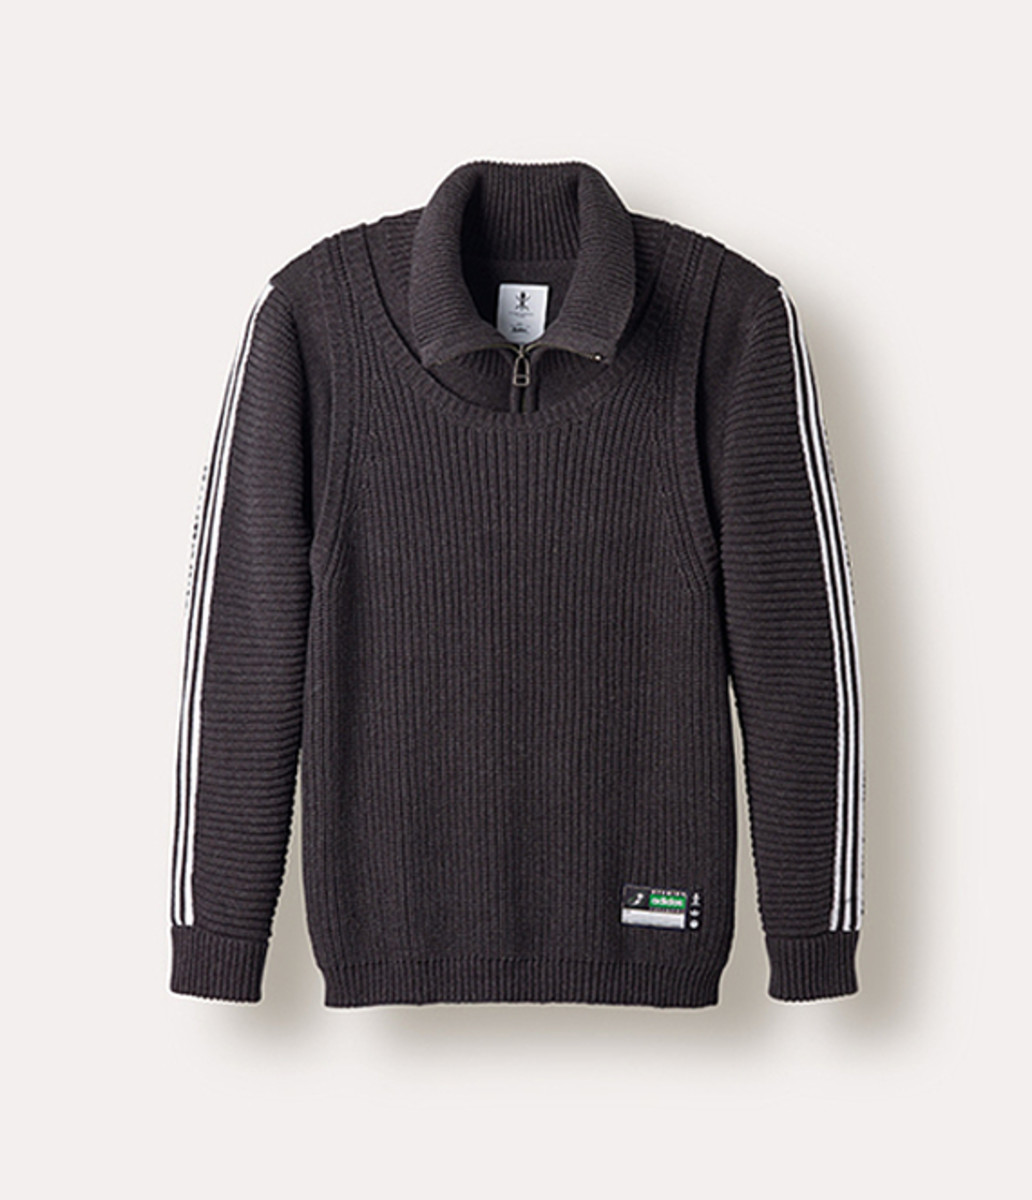 adidas-originals-opening-ceremony-fall-winter-2013-collection-13